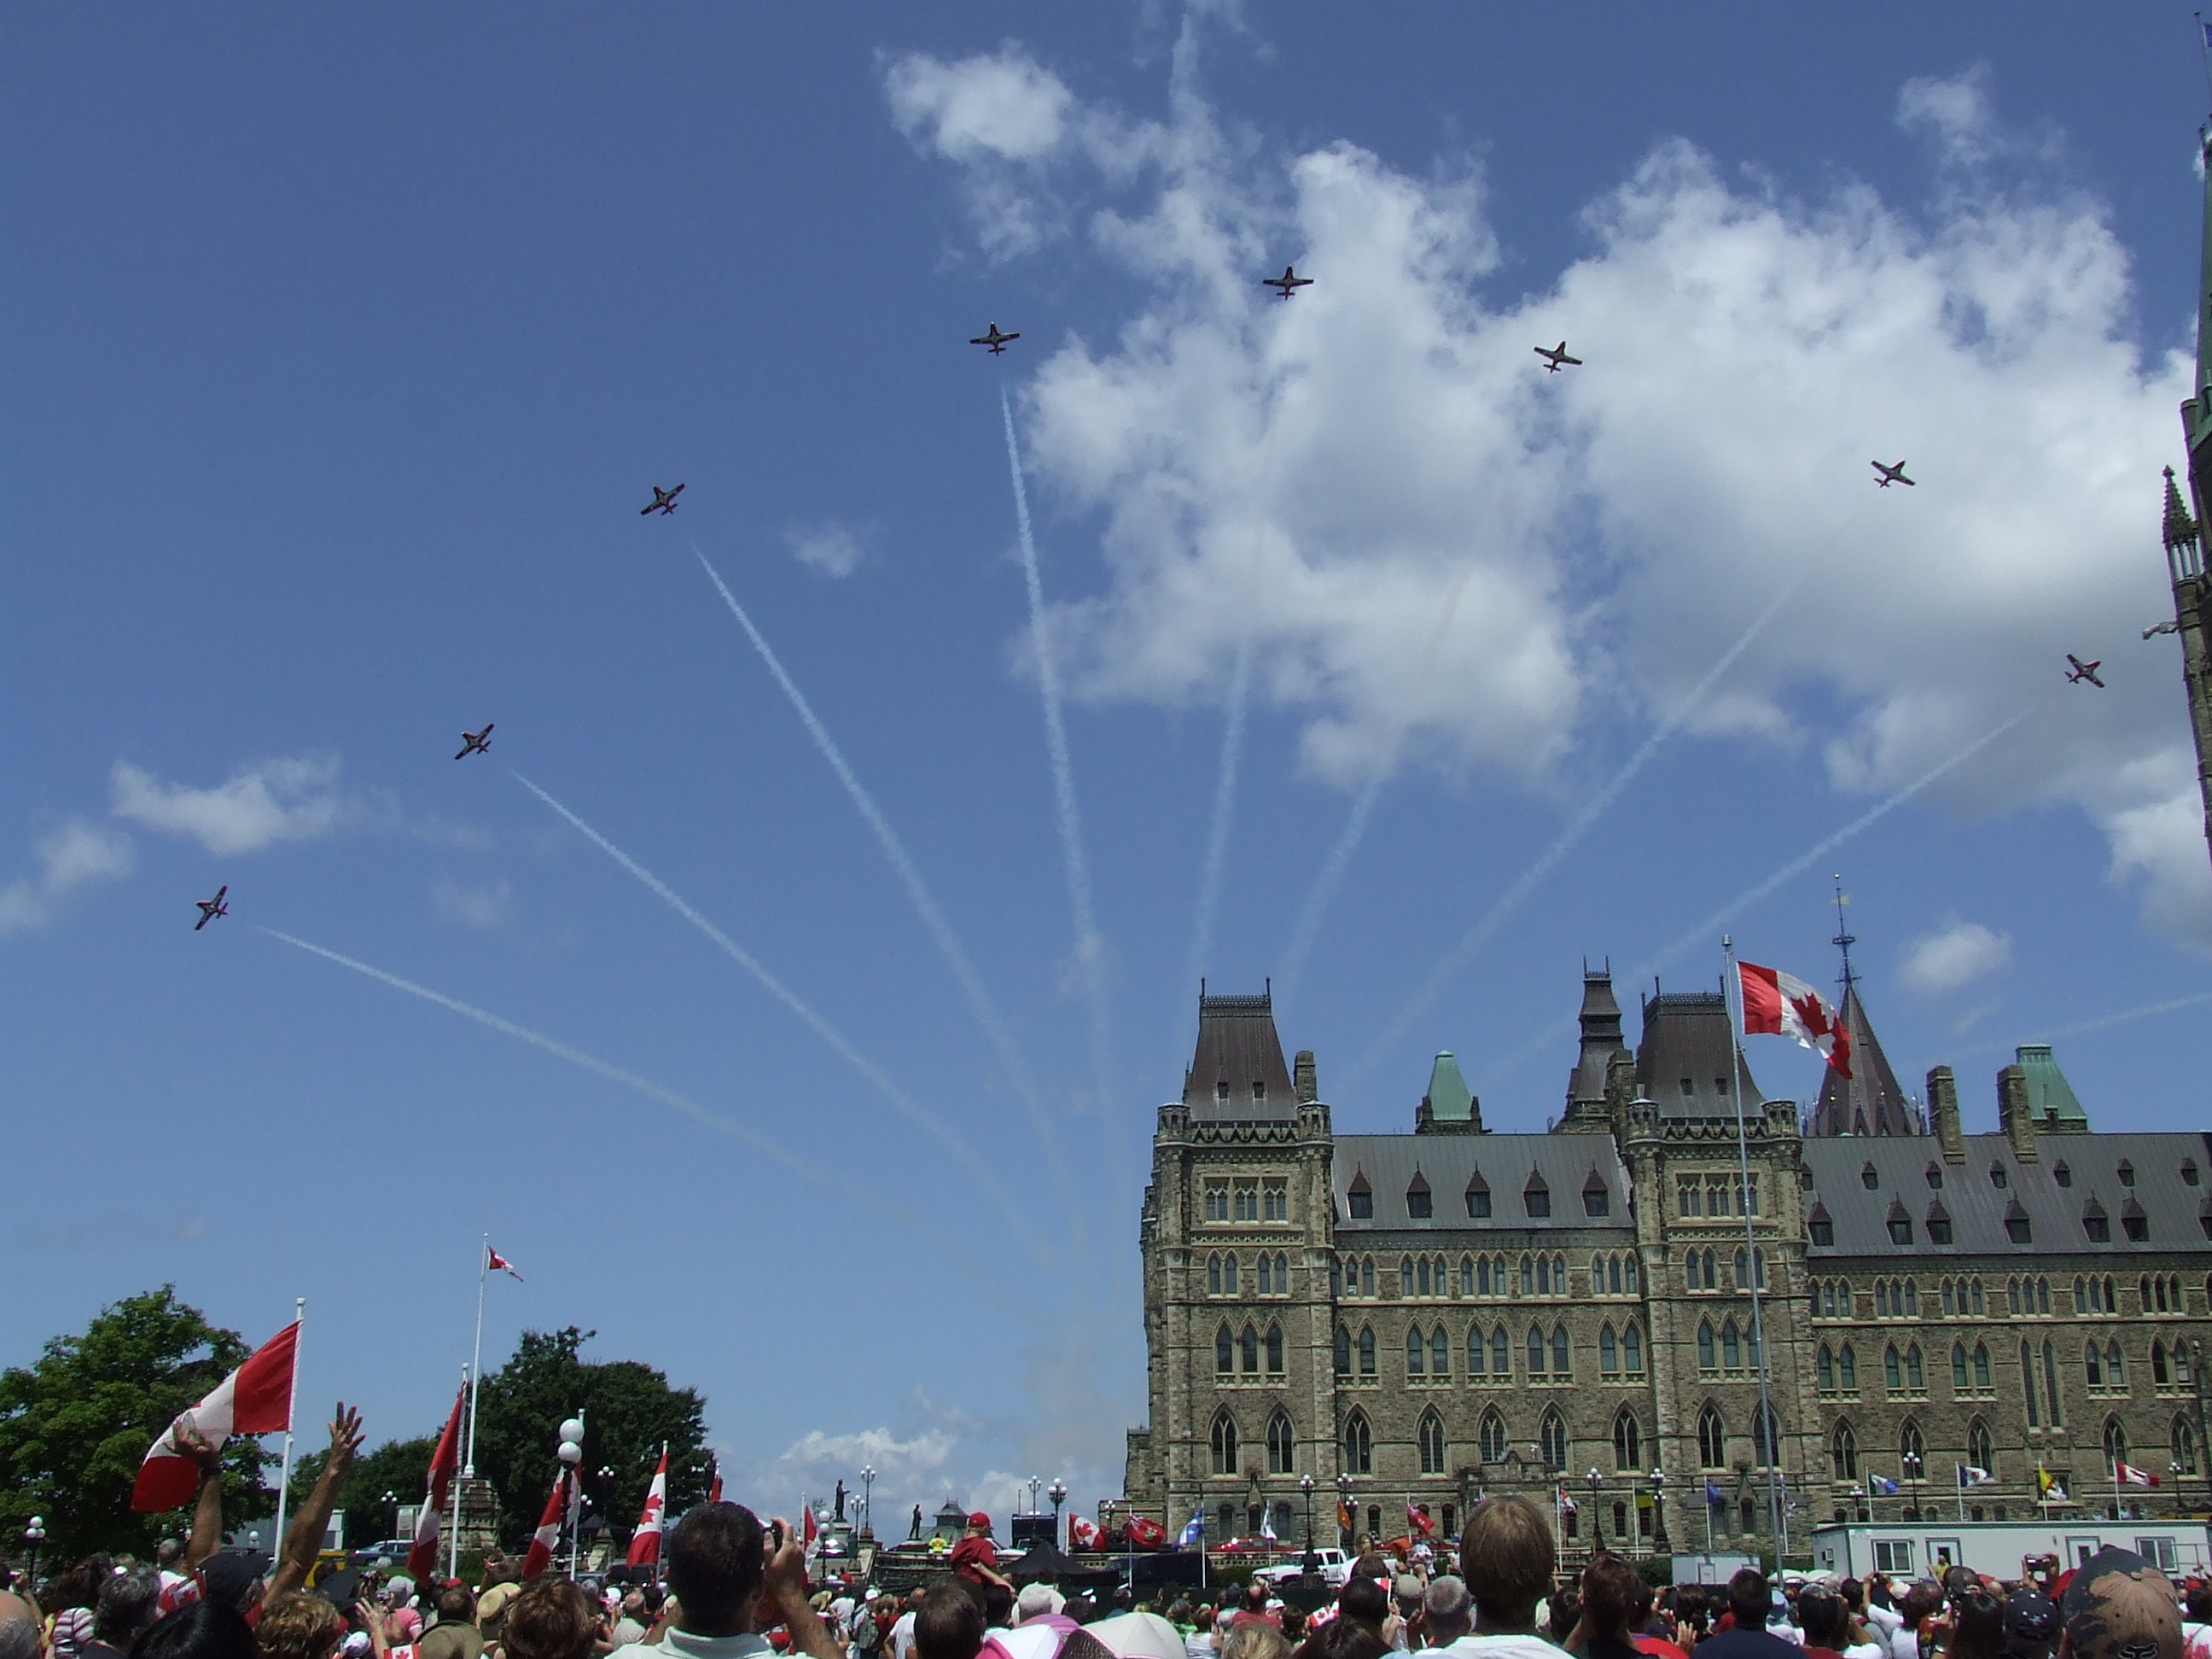 https://upload.wikimedia.org/wikipedia/commons/b/bb/Canada_Day_2008_Snowbirds_over_Parliament.jpg